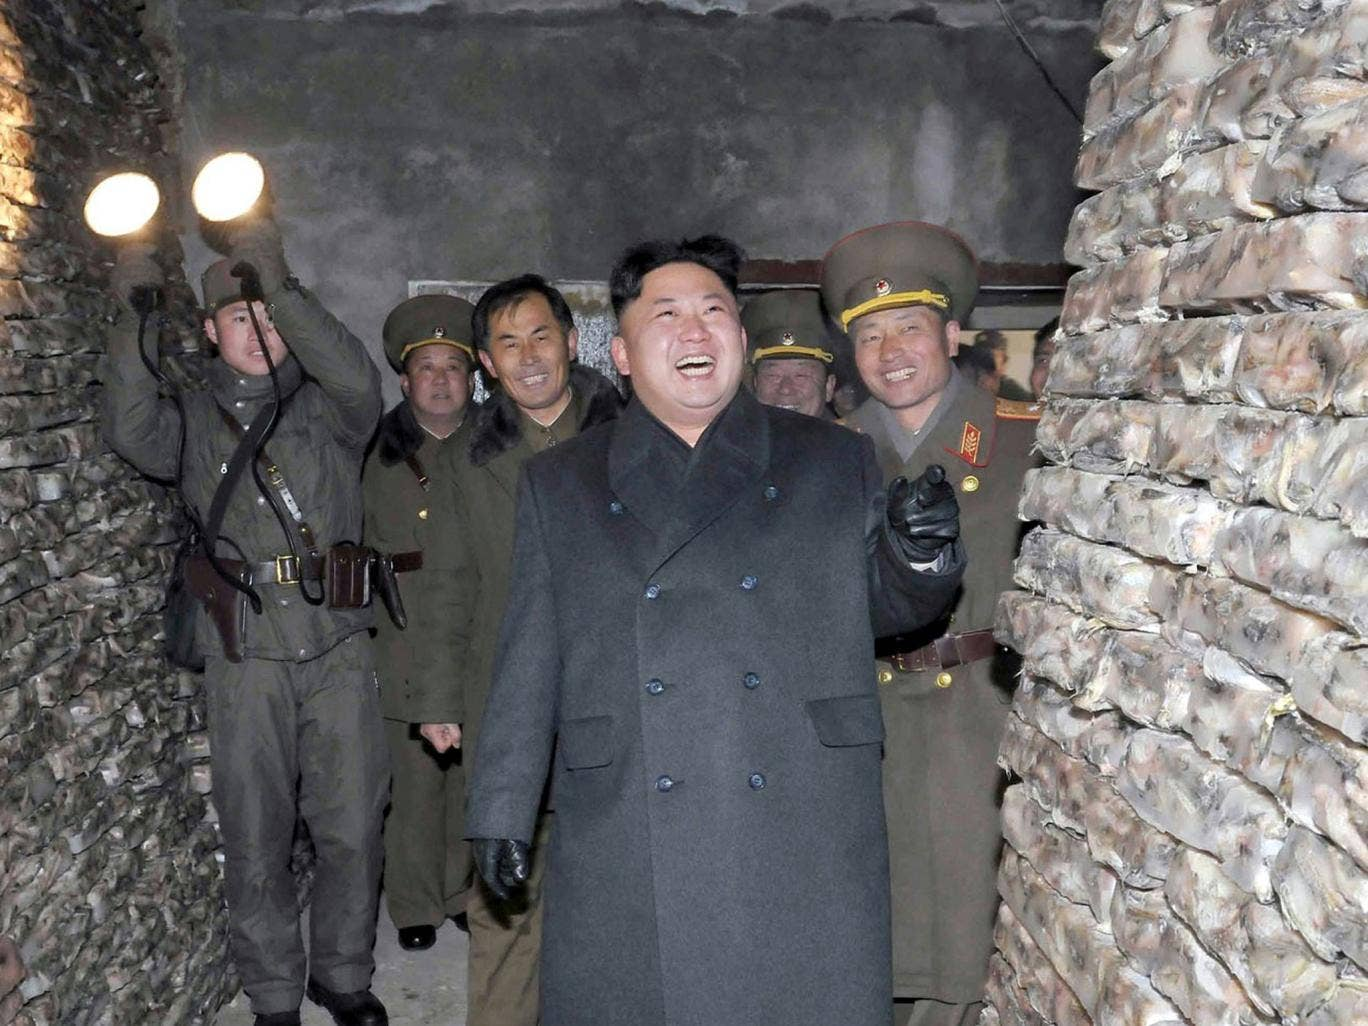 Kim Jong-un visited a fisheries station and a ski resort in recent days